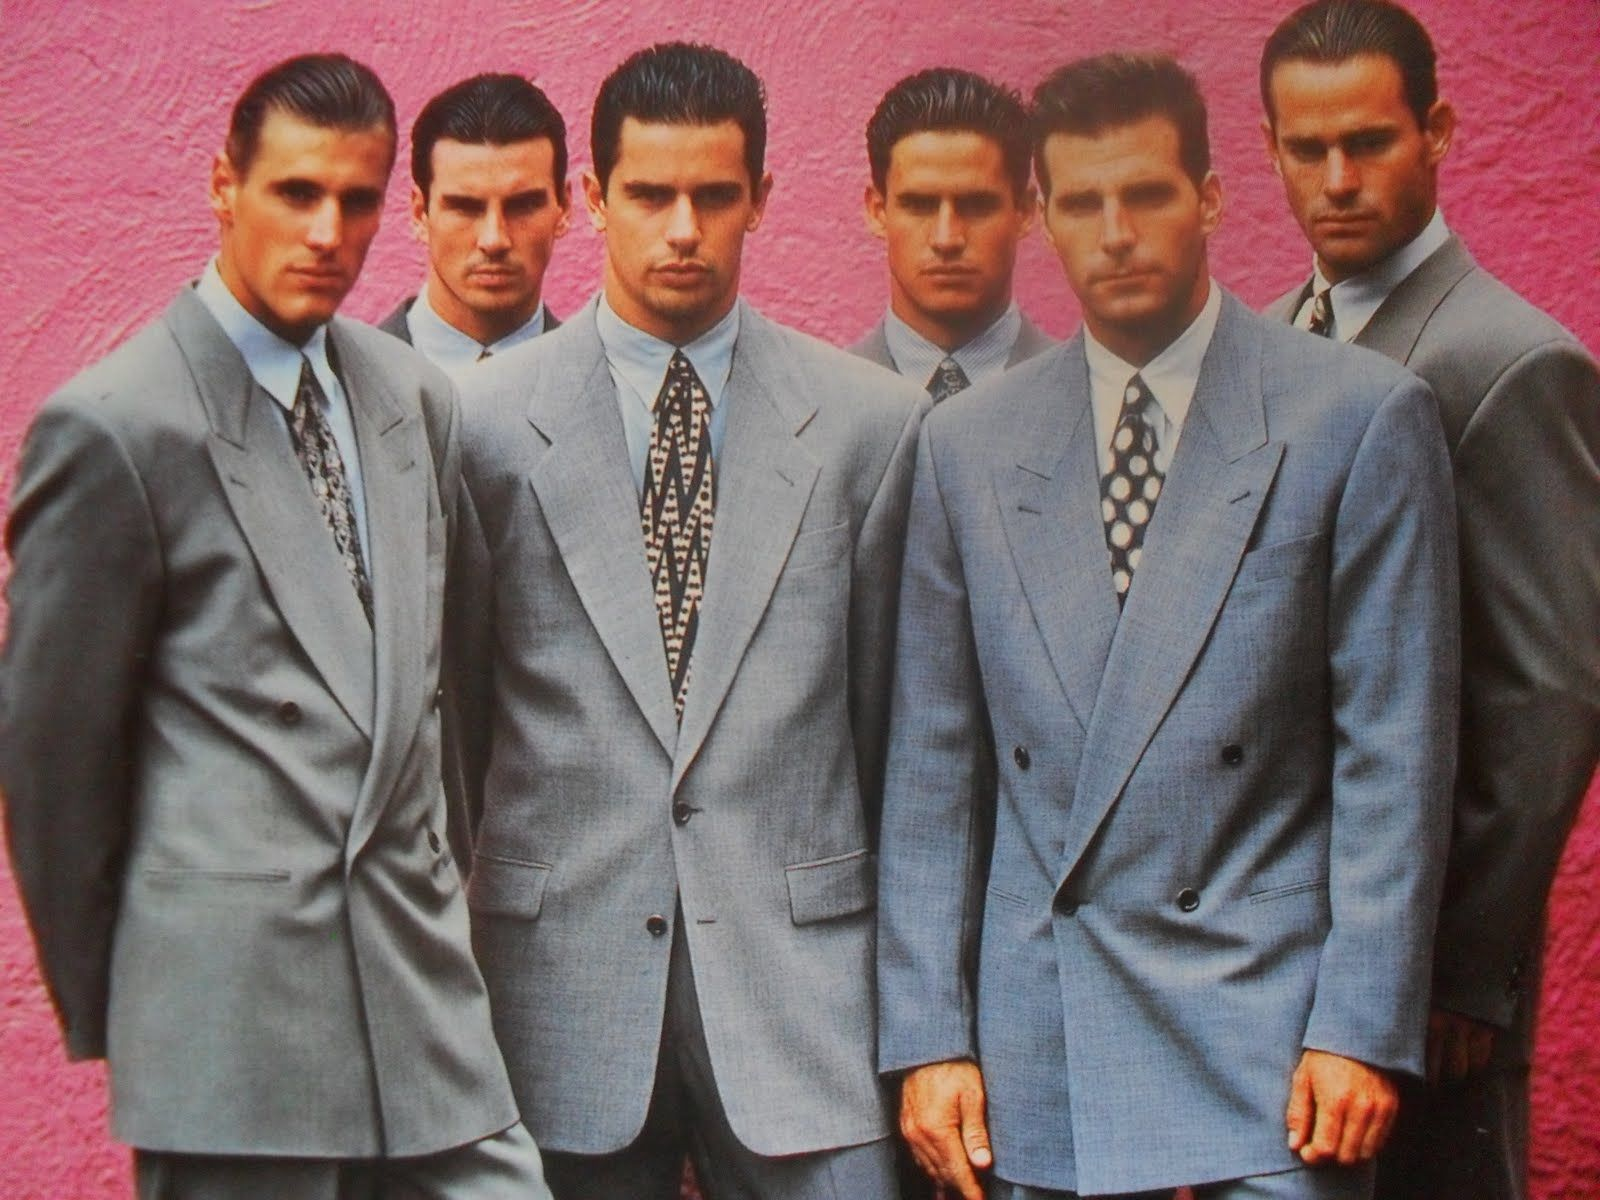 double breasted, pale suits, novelty ties   80s fashion men, Yuppie  fashion, 1980s mens fashion